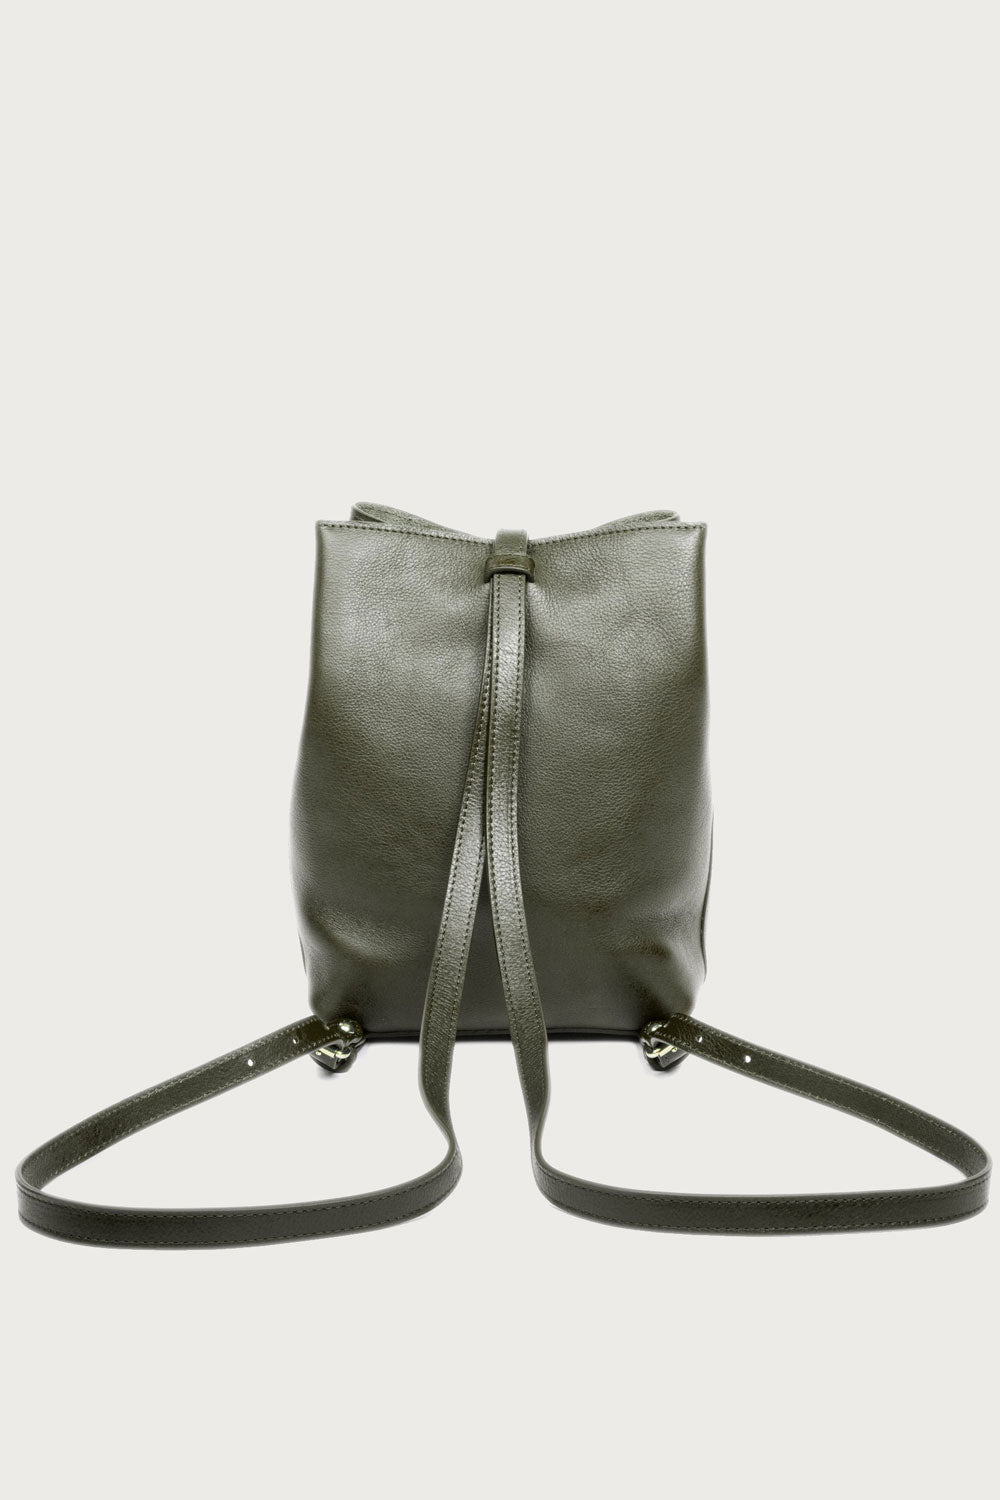 Lotuff Leather The Mini Sling Bag in Olive - Vert & Vogue